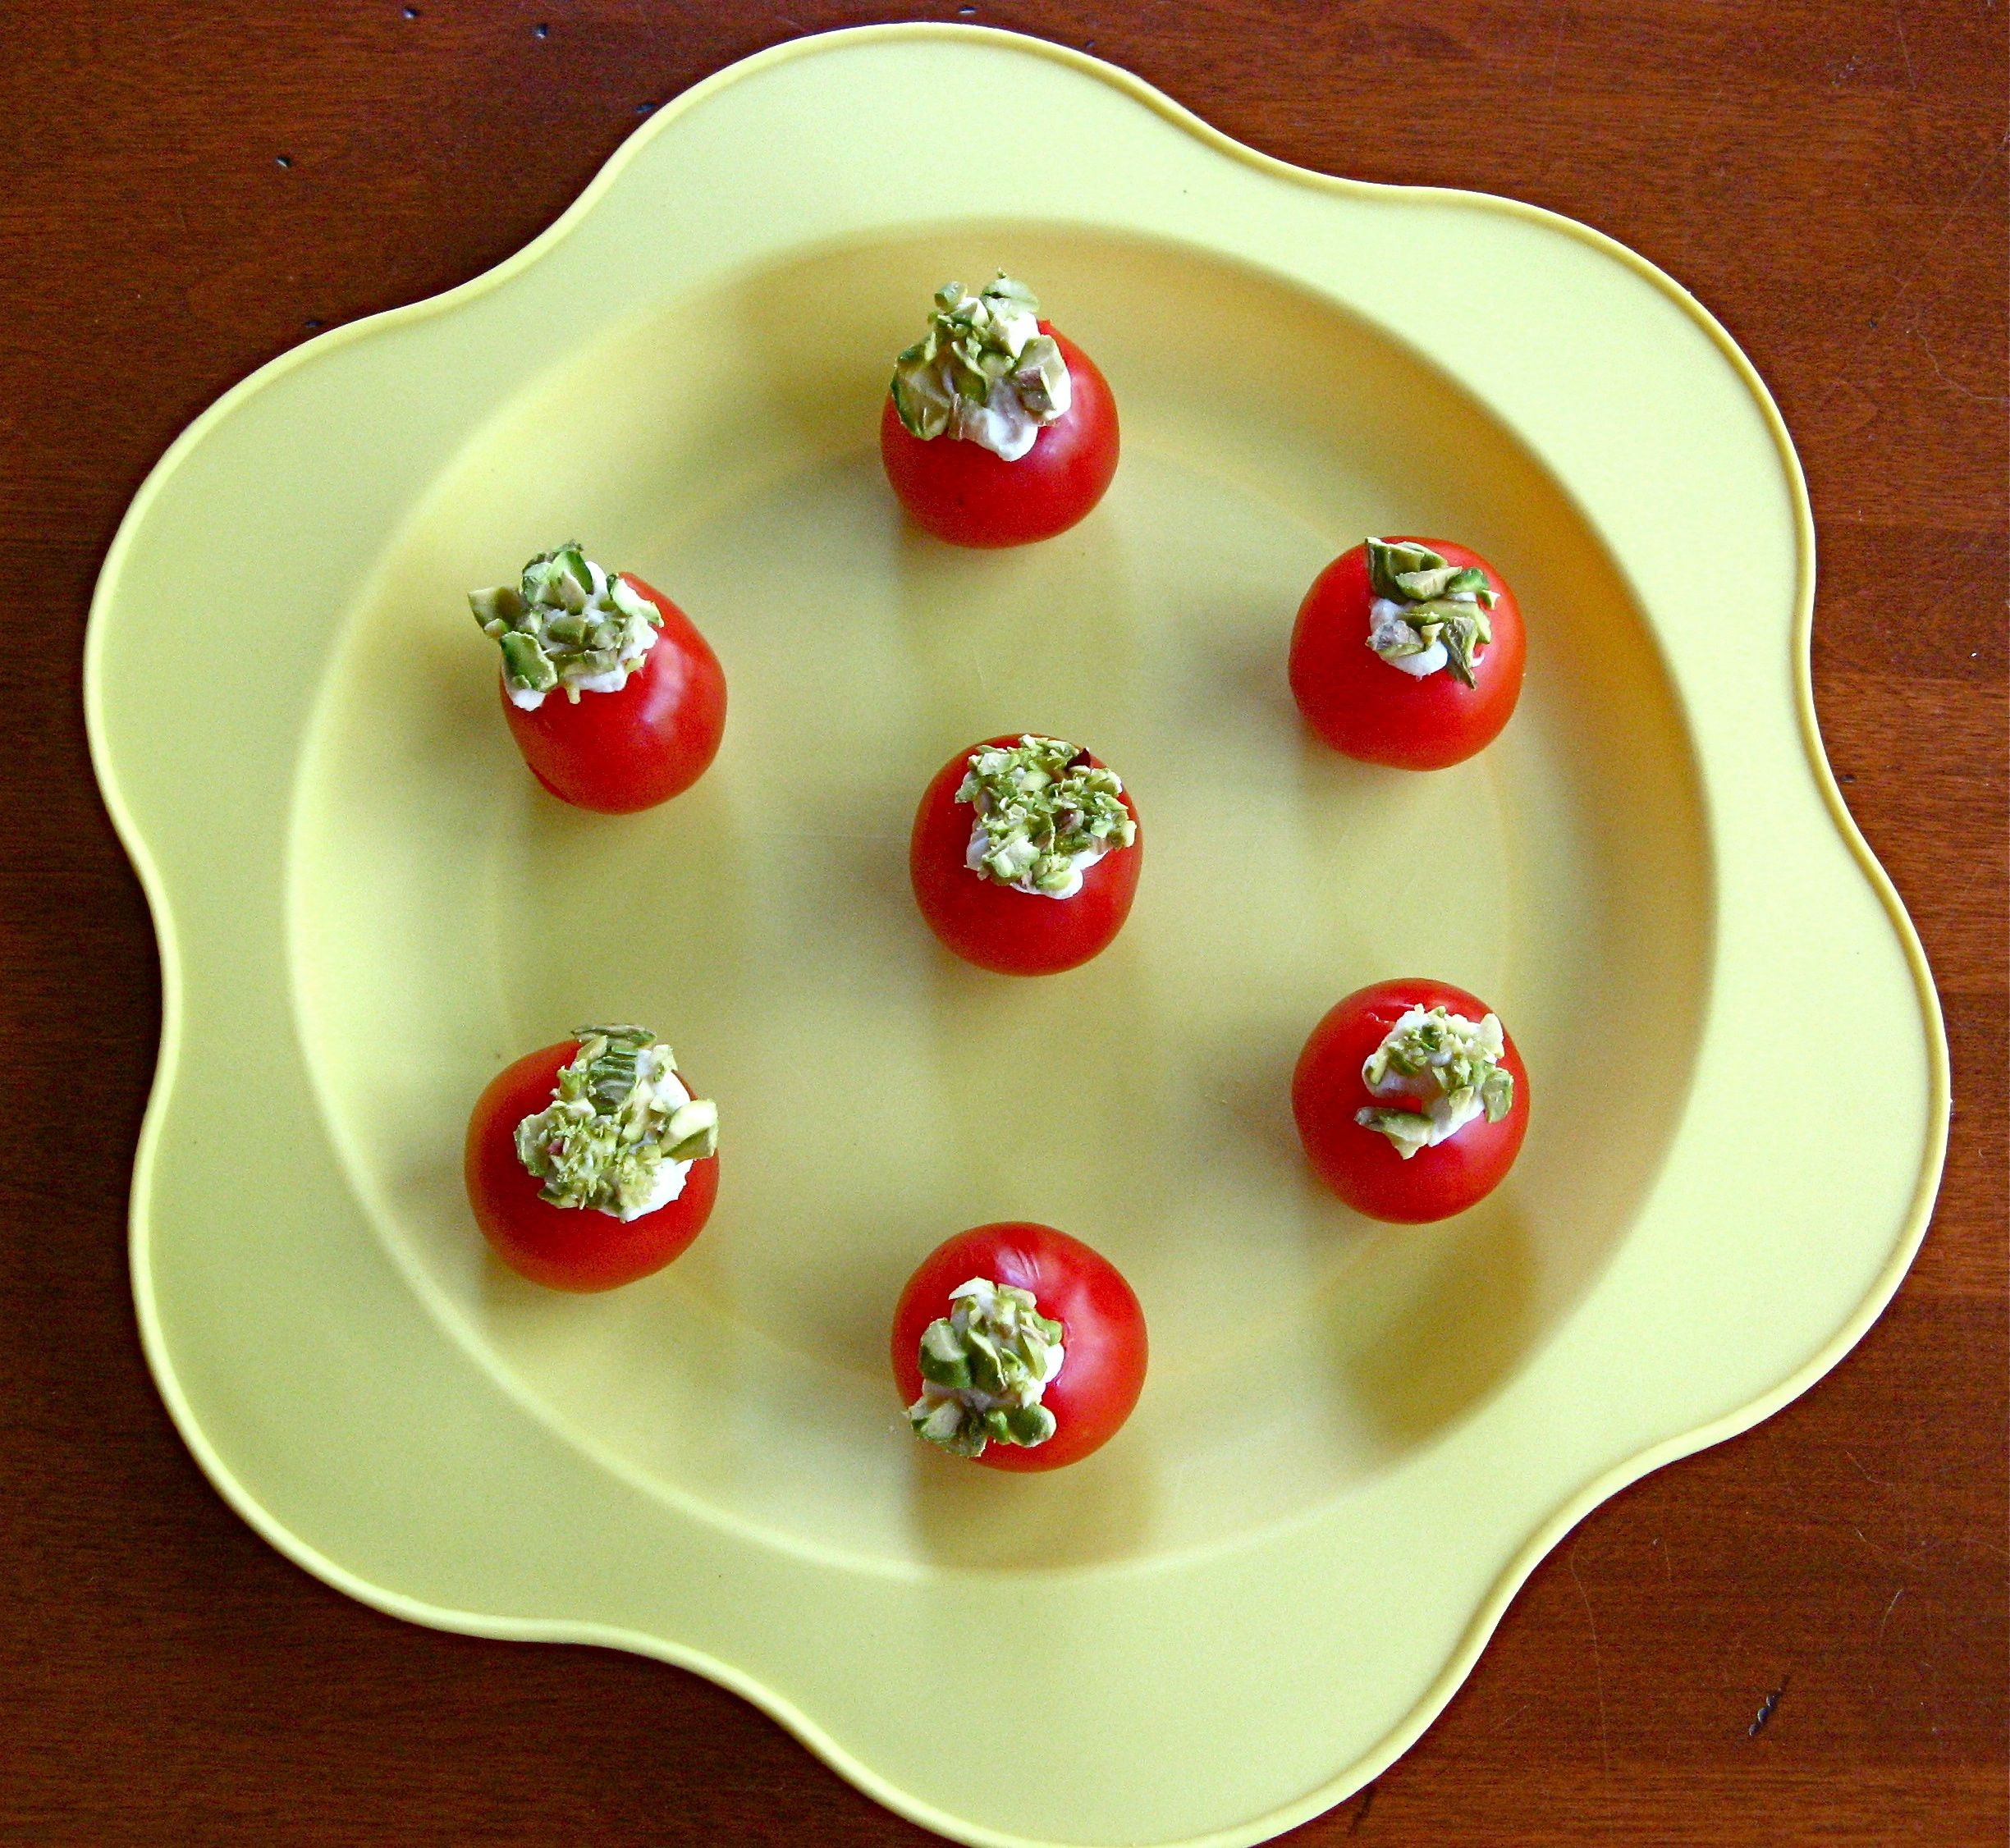 Easy+Party+Appetizers | Easy Party Appetizers 2 - Boursin Stuffed Tomatoes